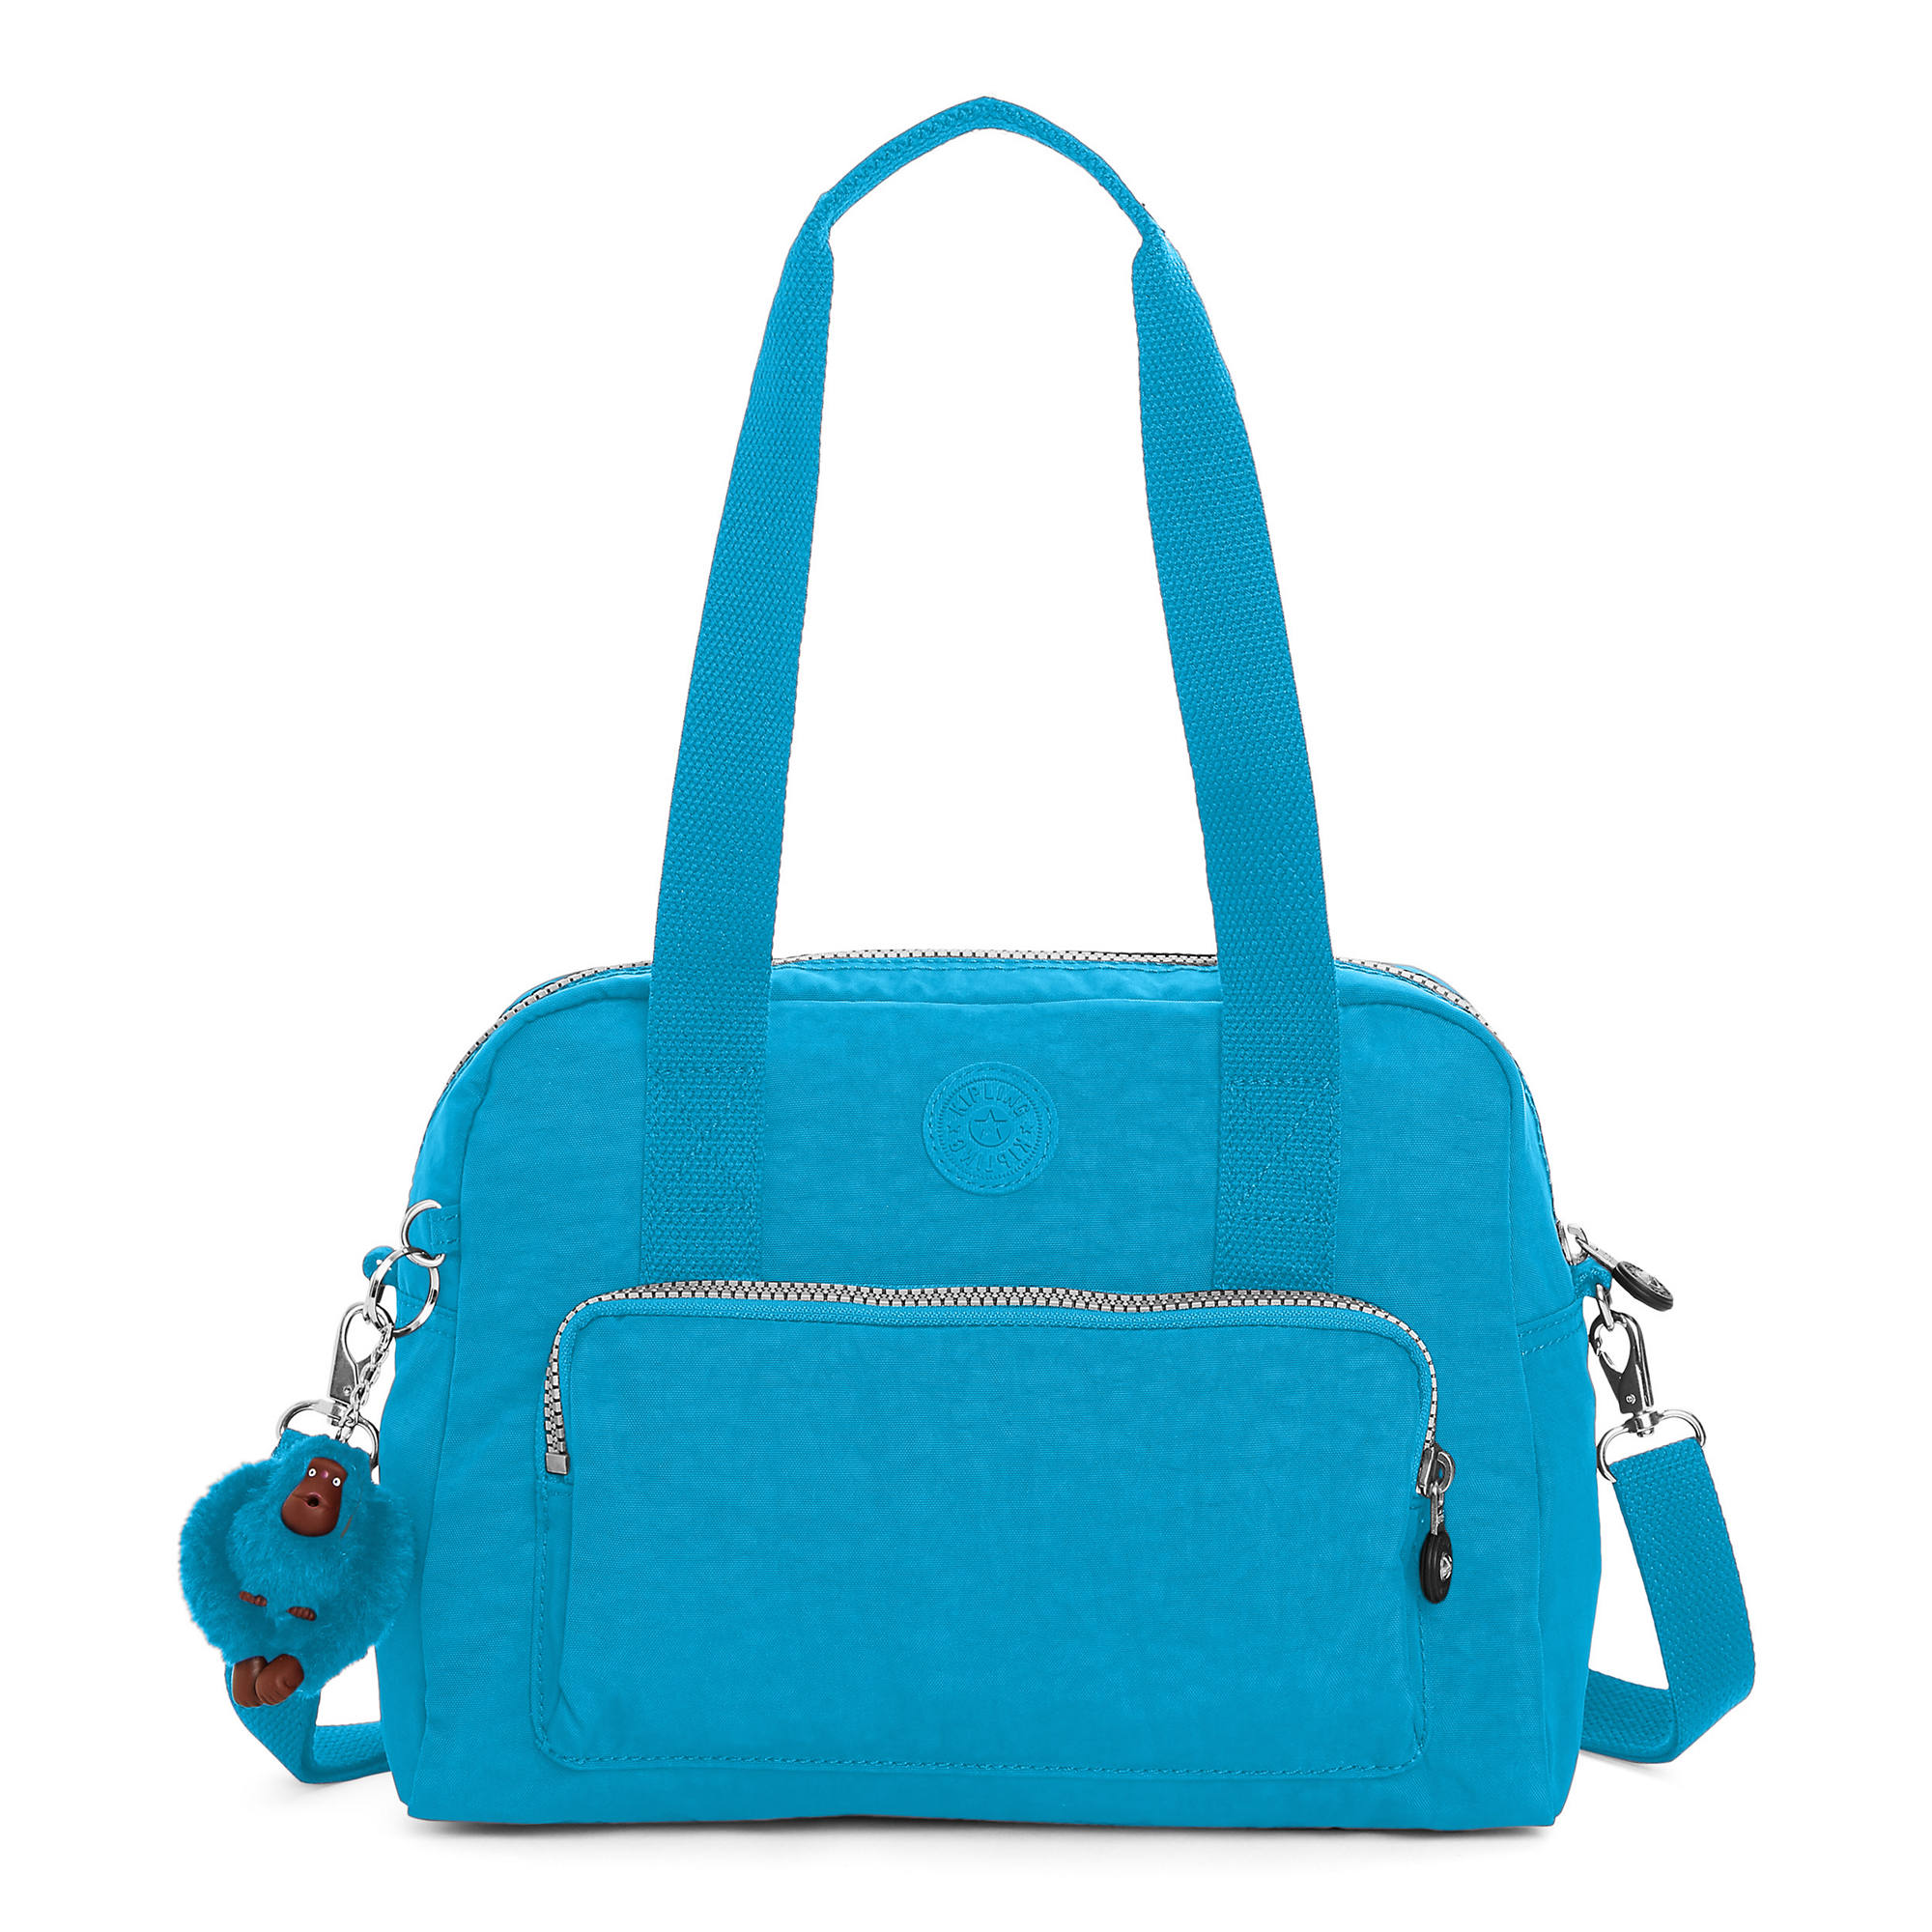 Dania Handbag Polaris Blue Large